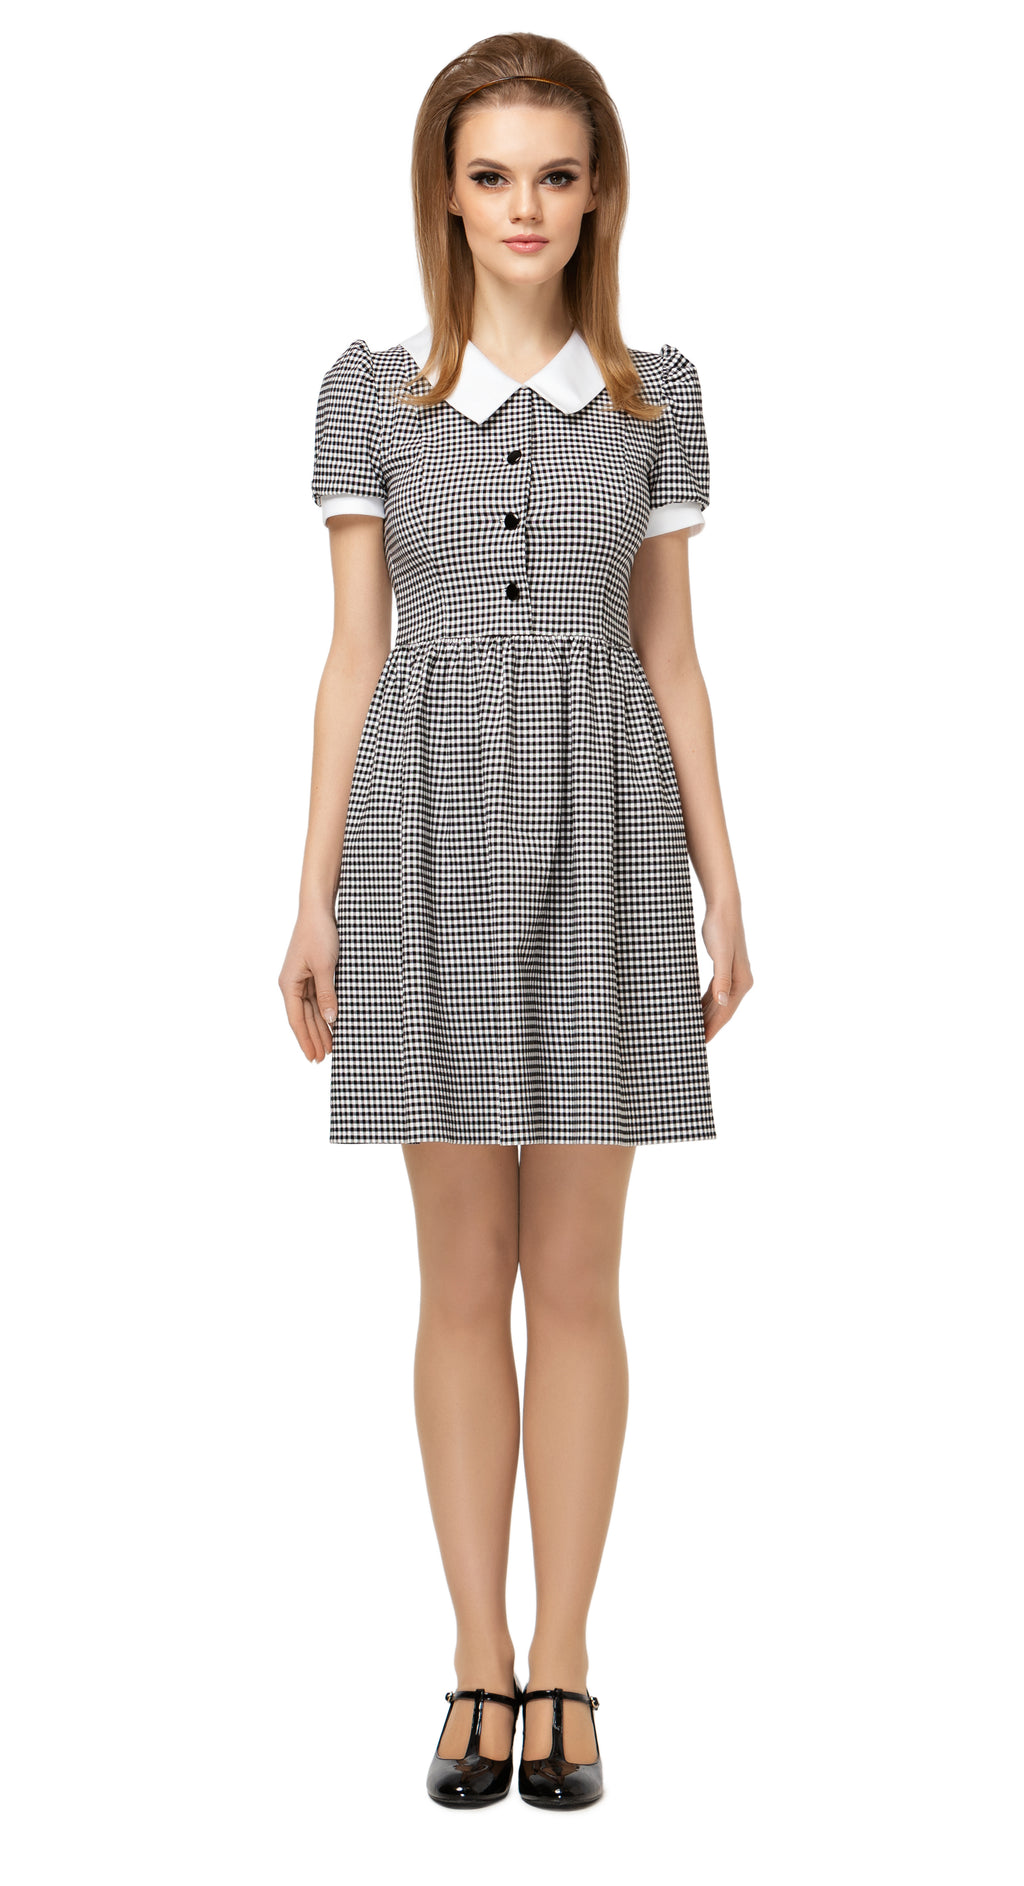 Gingham Spring dress with fitted bodice and gathered skirt. Made of premium quality Italian cotton, with slightly puffed sleeves, four button detailing and classic collar. A casual, effortlessly  comfortable and cool fair weather go-to.